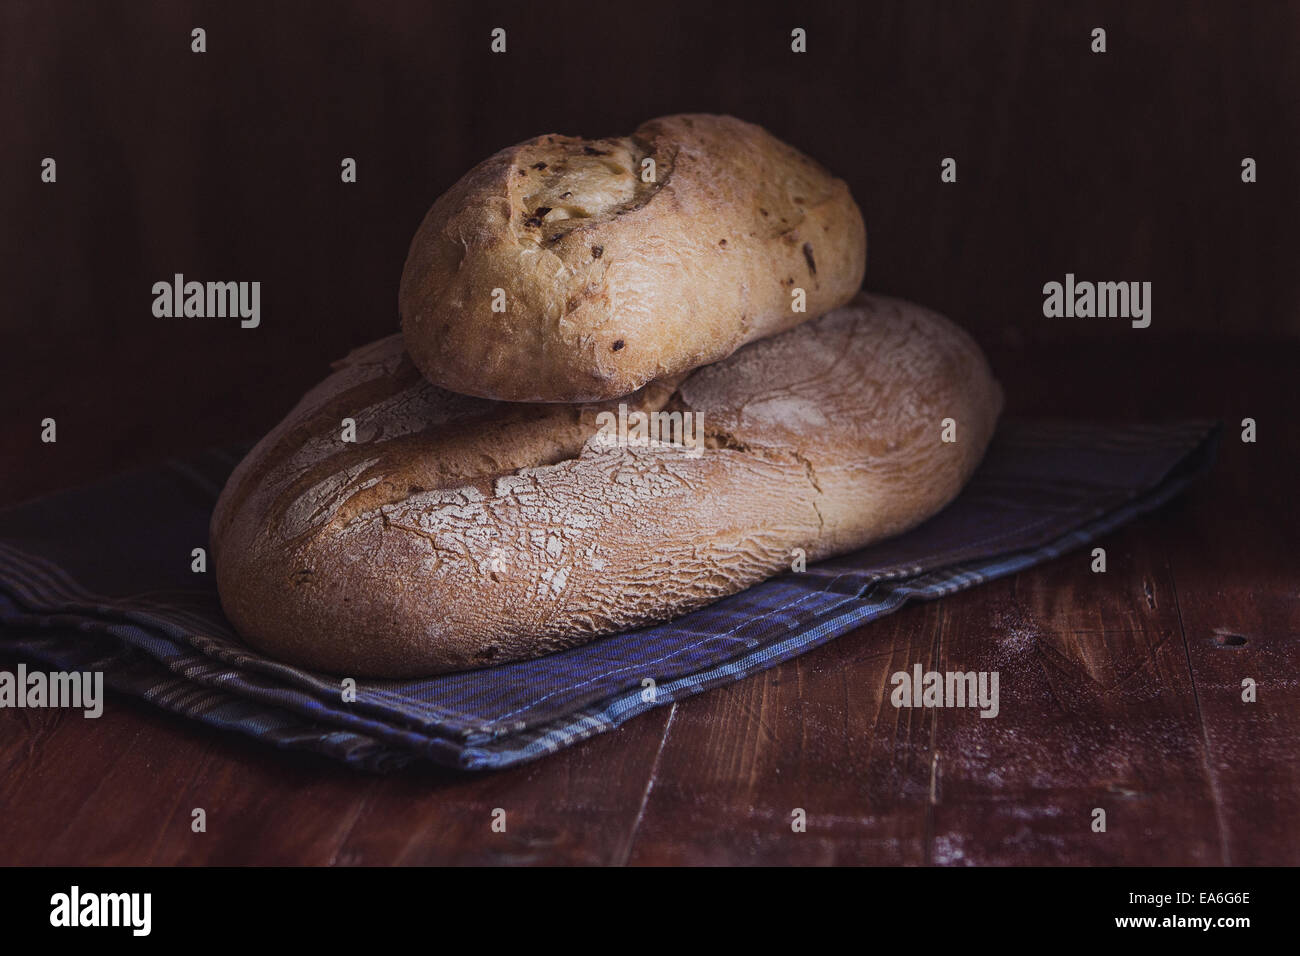 Two Loaves of bread - Stock Image